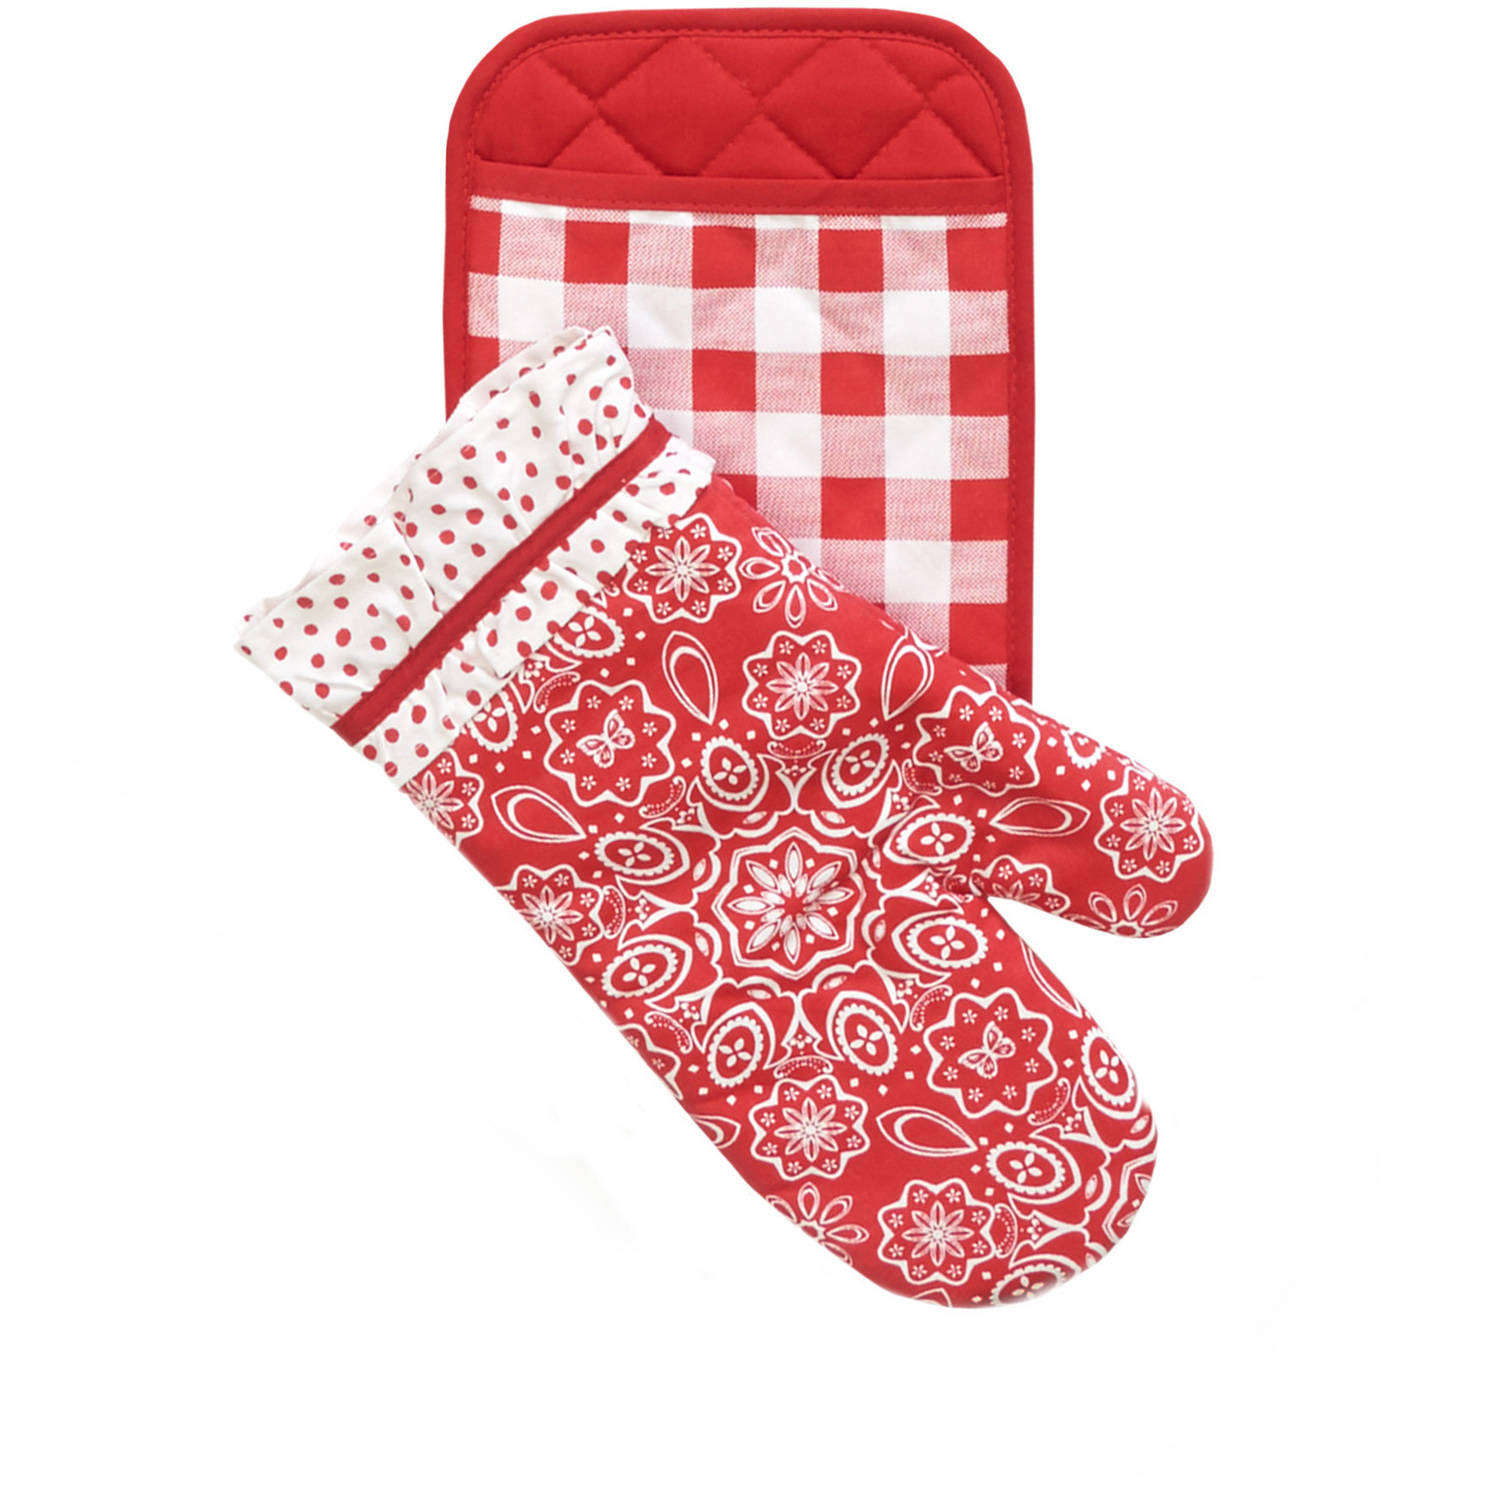 The Pioneer Woman Bandana Pot Holder/Oven Mitt Set, Red